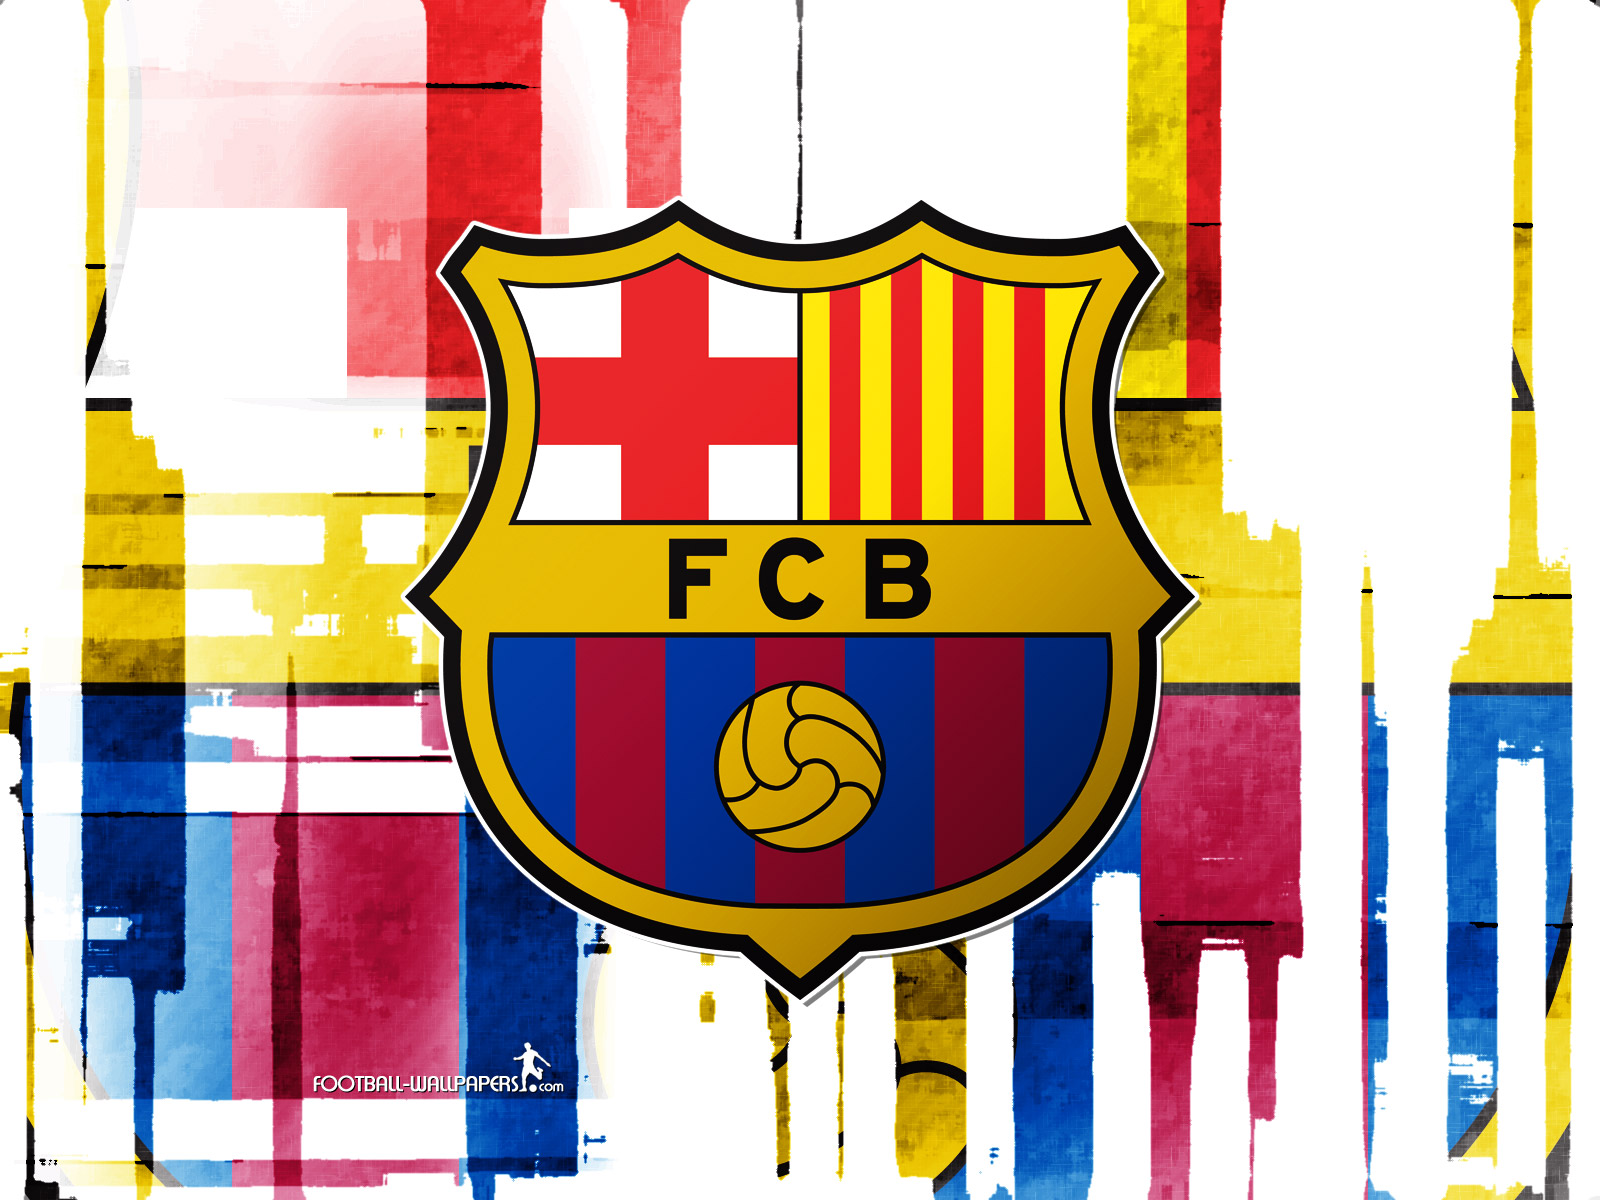 Fc Barcelona Wallpapers - Fc Barcelona Wallpaper 484407 - Fanpop  picture wallpaper image